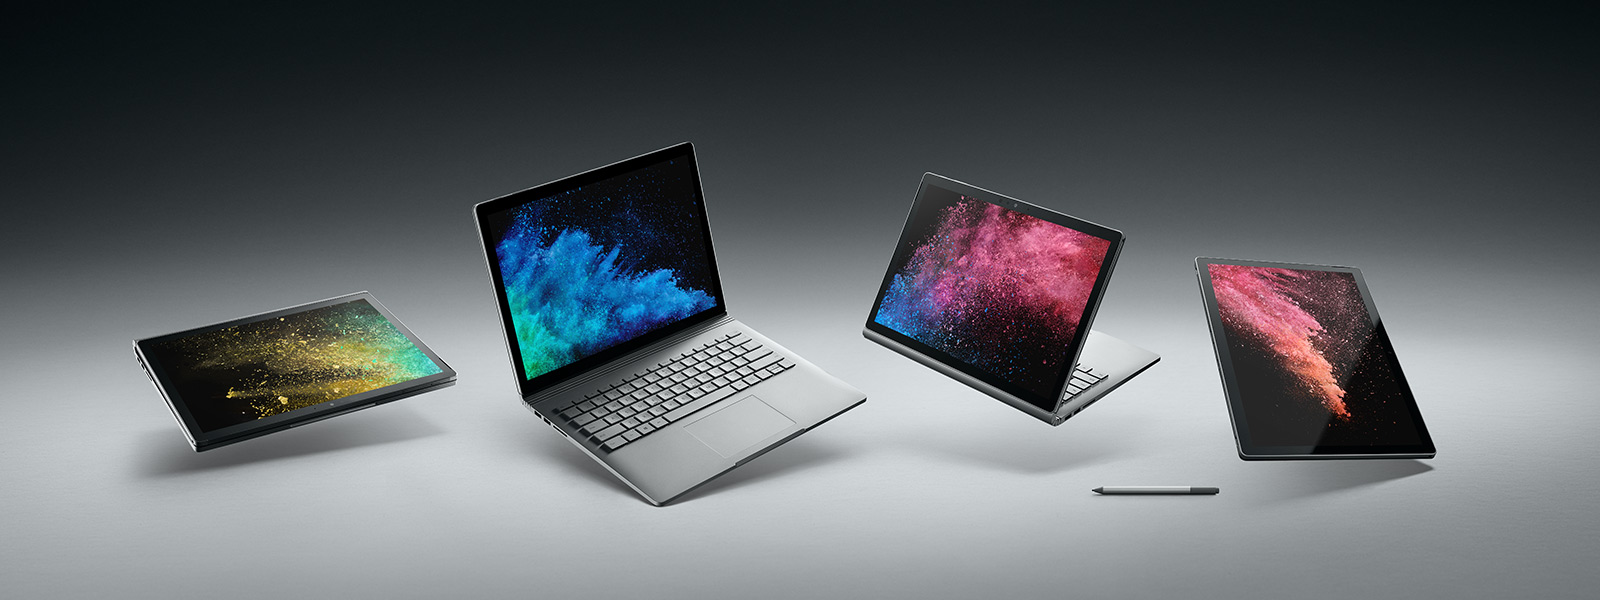 Surface Book 2 in diverse modalità con la Penna per Surface.